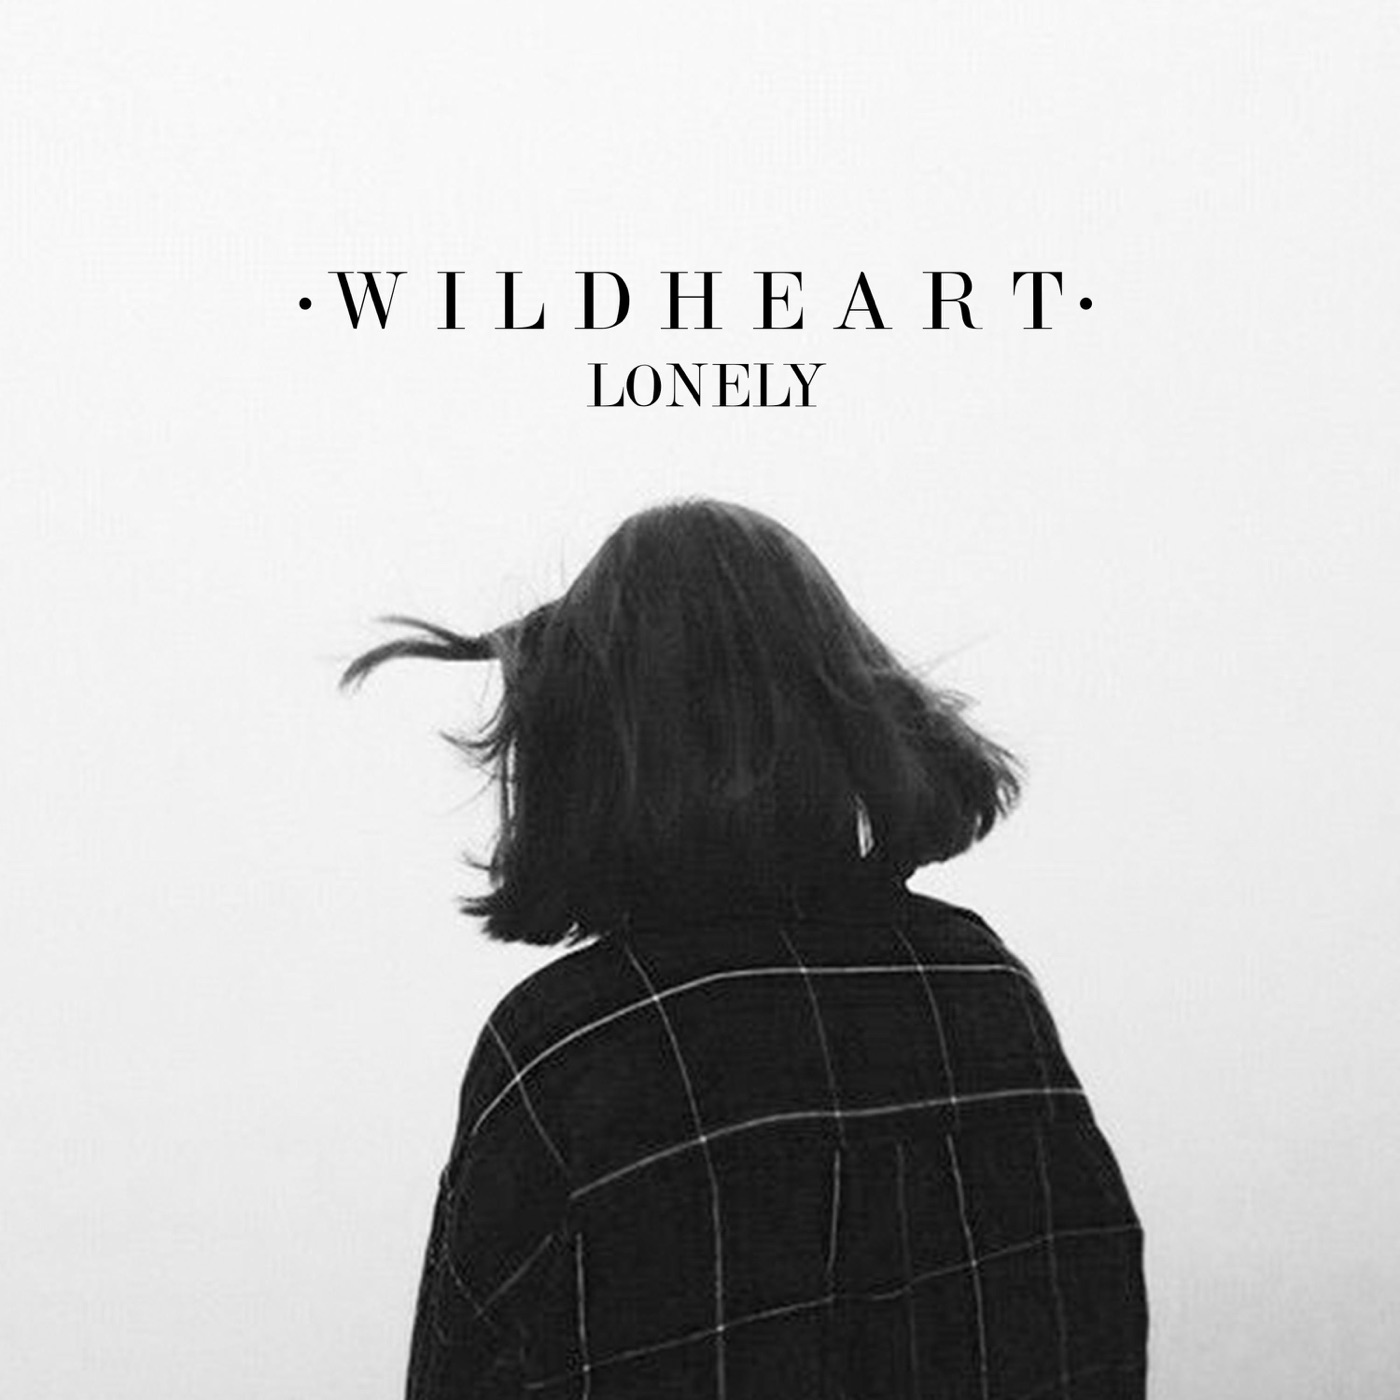 Wildheart - Lonely [Single] (2019)